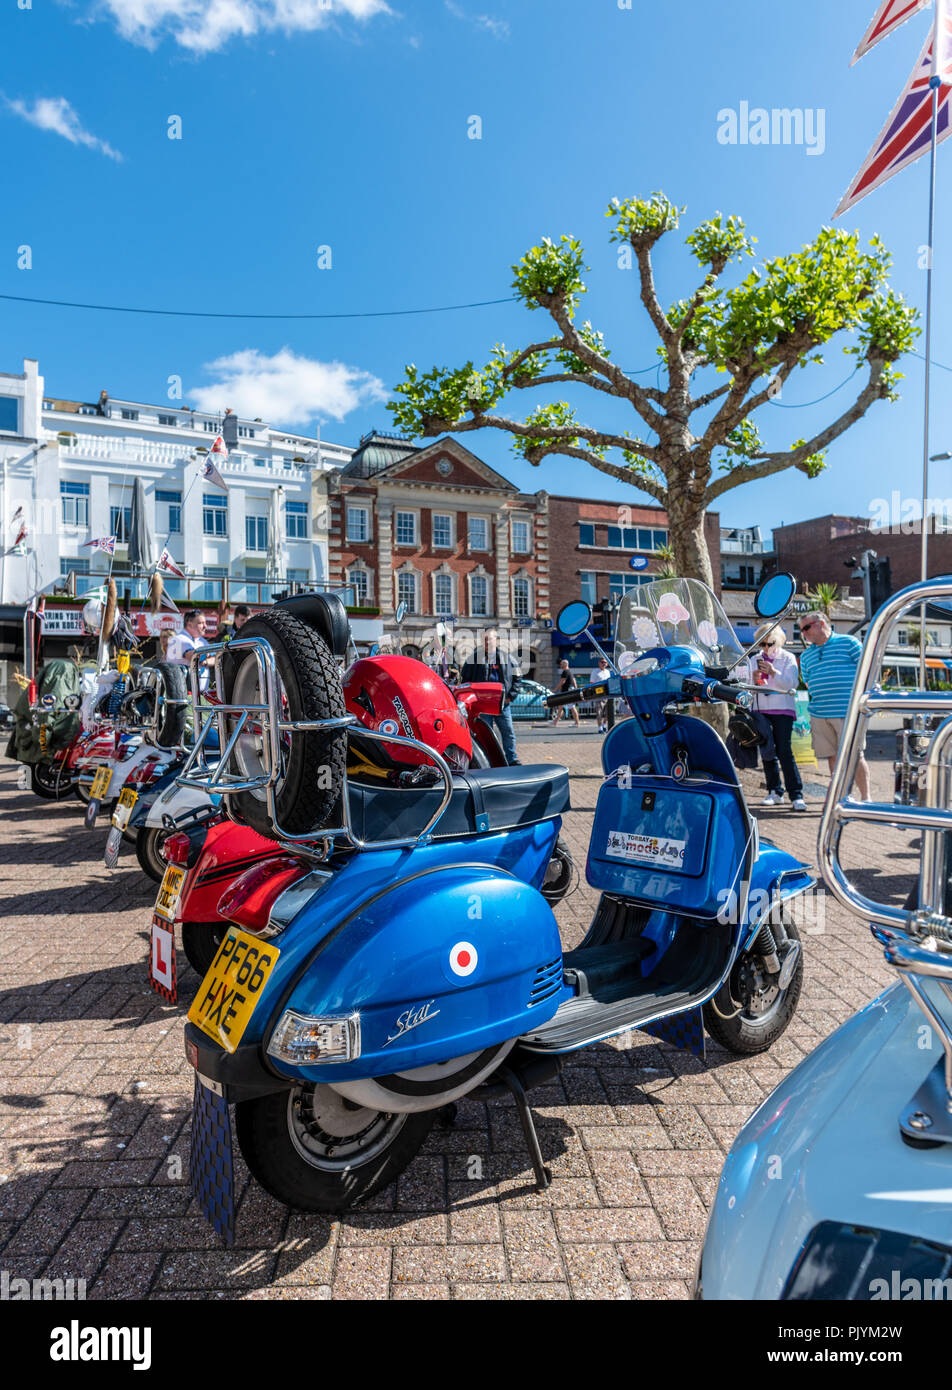 Scooter Club Stock Photos & Scooter Club Stock Images - Alamy